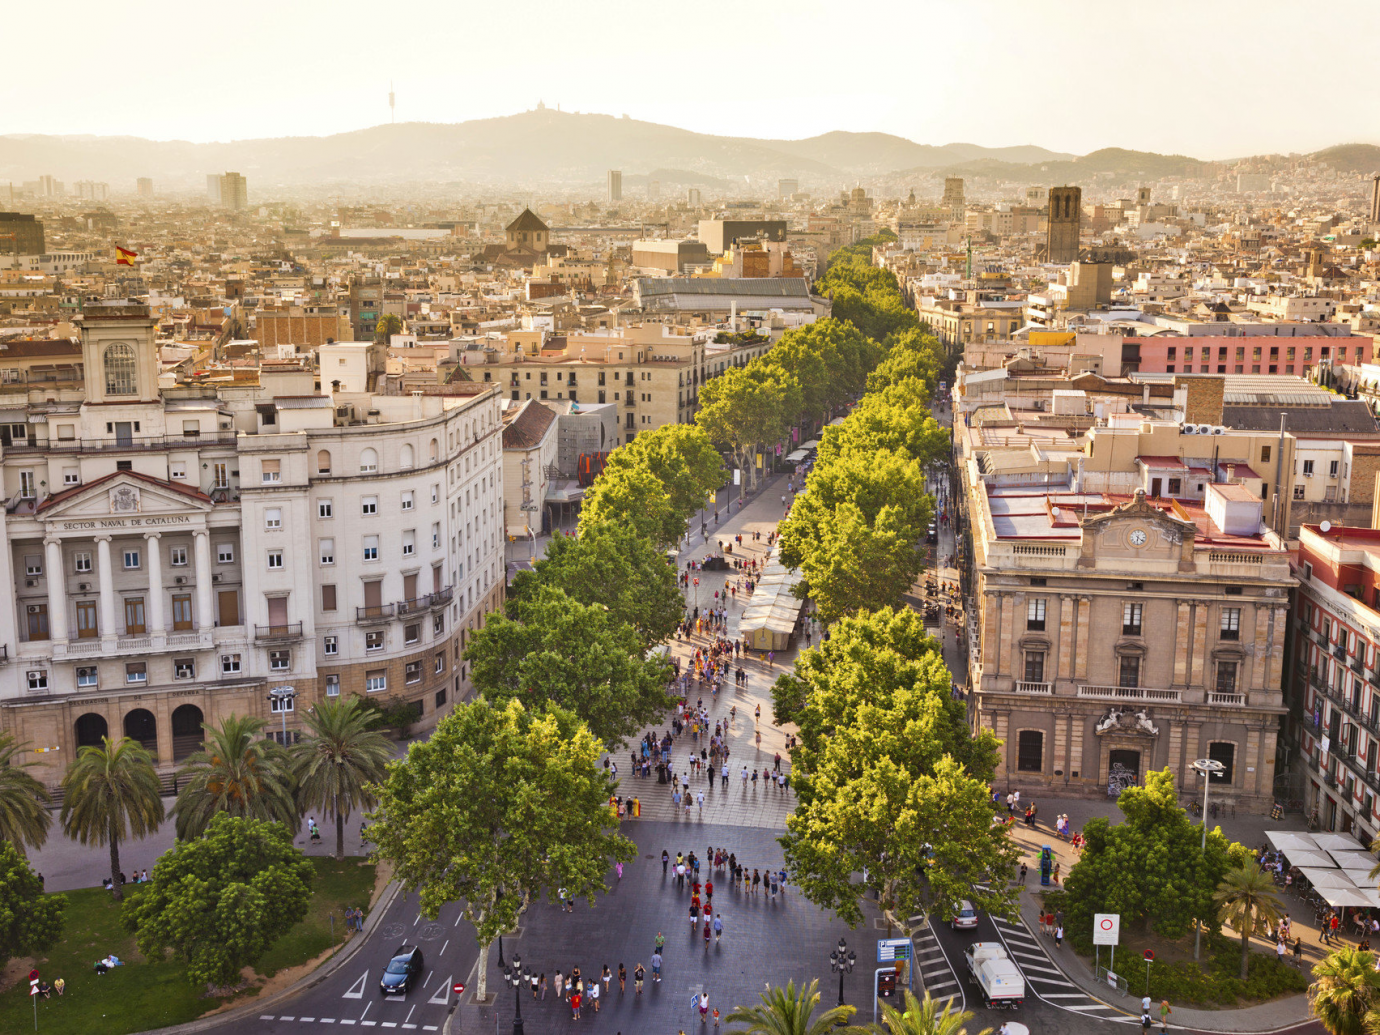 Aerial shot of Barcelona as the sun begins to set